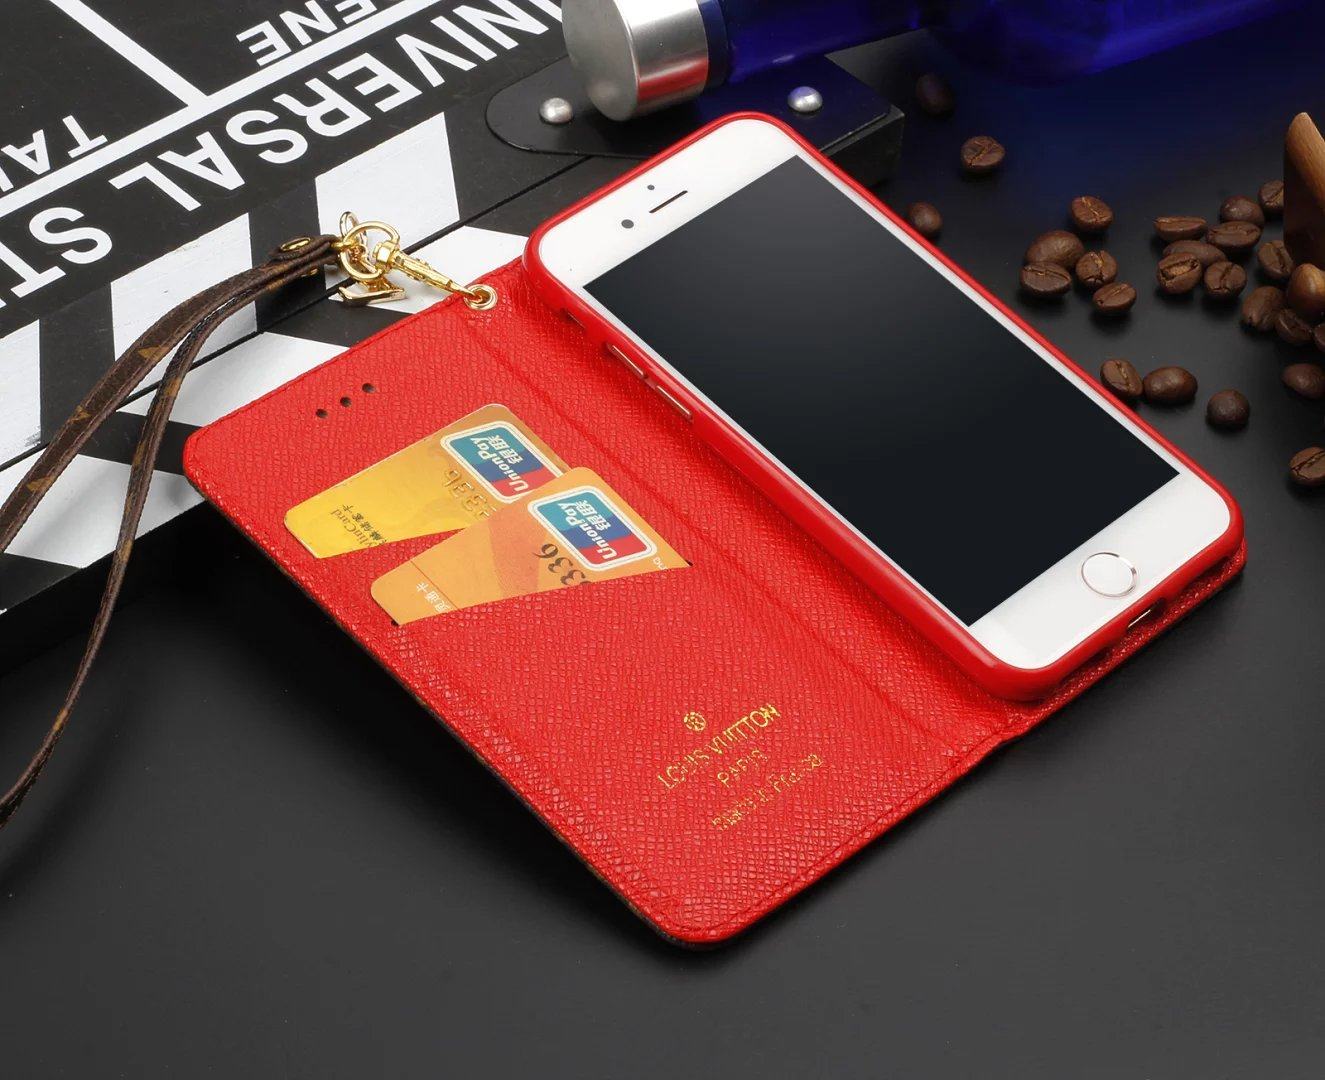 mini iphone hülle iphone hülle online shop Louis Vuitton iphone 8 Plus hüllen ca8 Plus 8 Pluslber machen iphone 8 Plus zubehör hardca8 Plus iphone 8 Plus handykappen ca8 Plus erstellen iphone 8 Plus hülle billig